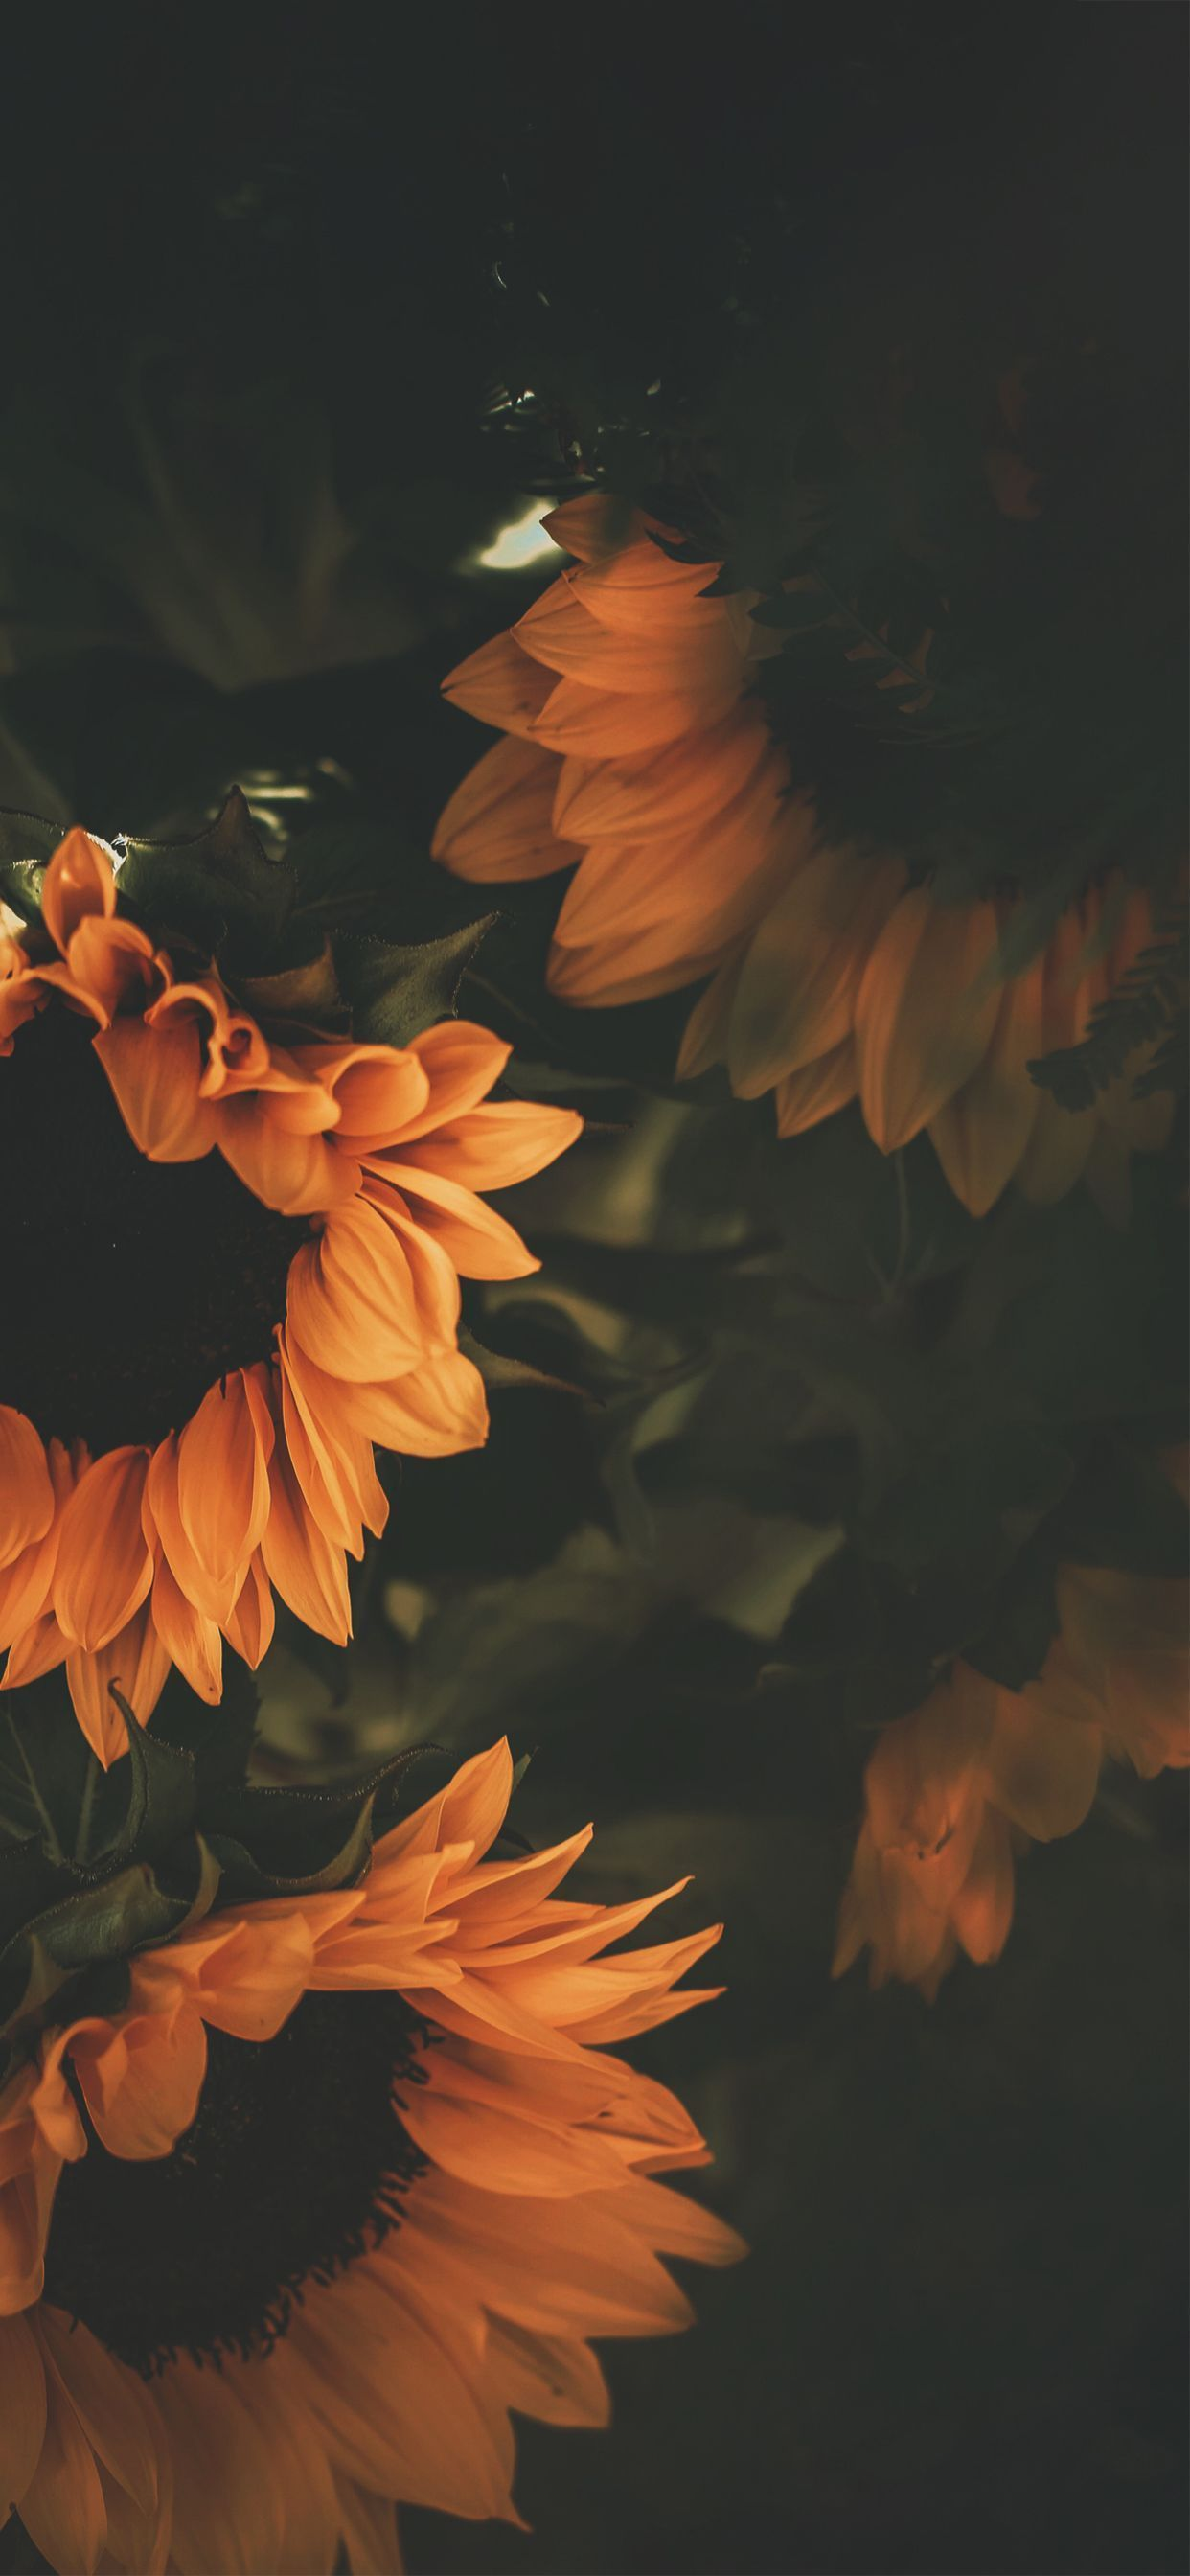 Iphone Xs Max Flower Wallpaper For Iphone X Is Amazing Hd Wallpapers For Deskt Sunflower Iphone Wallpaper Nature Iphone Wallpaper Screen Savers Wallpapers